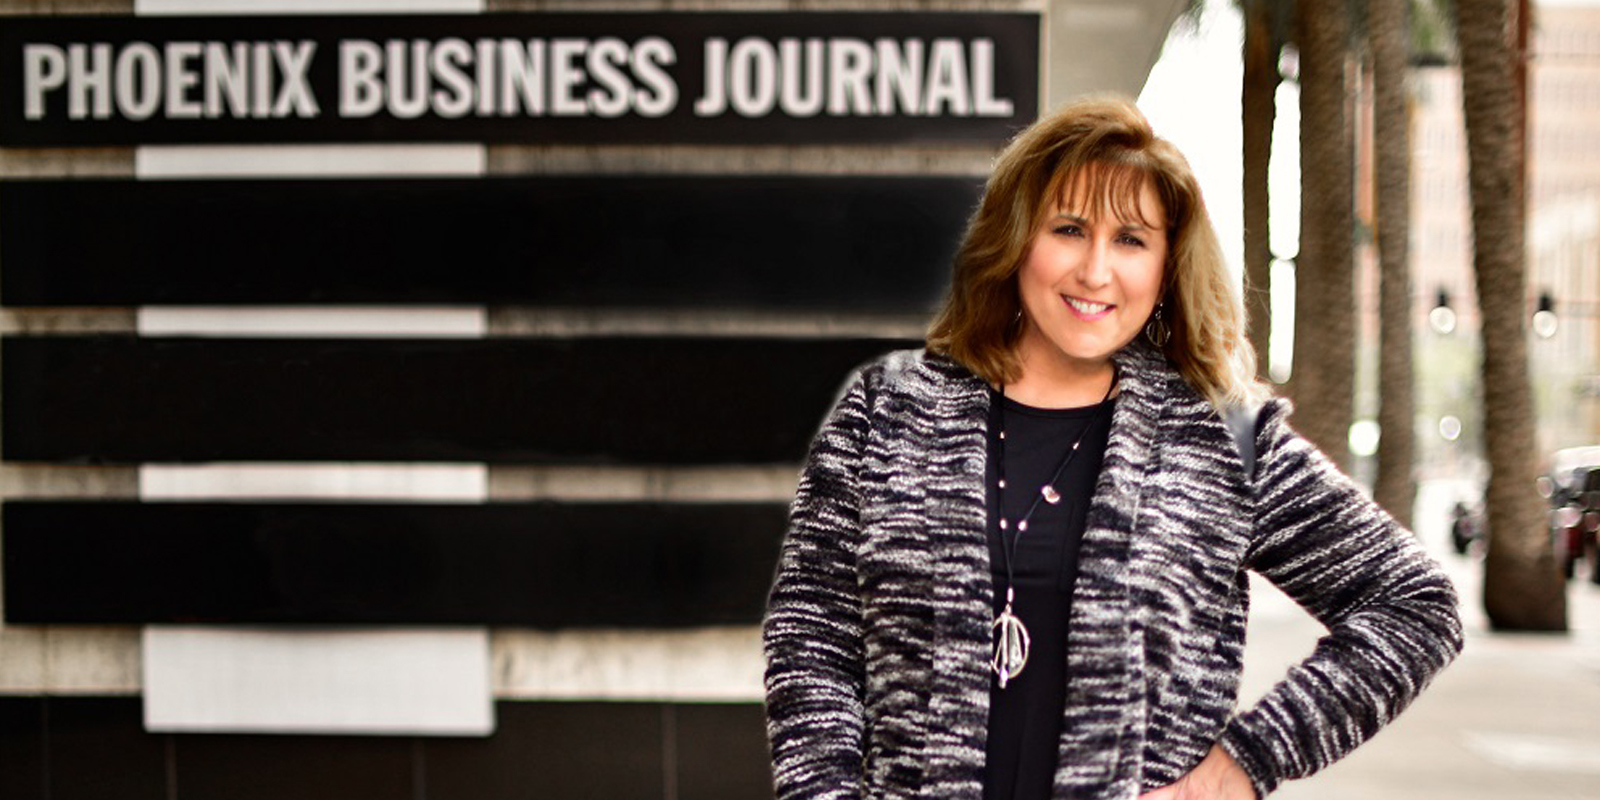 Ilana Lowery - Phoenix Business Journal - Ilana Lowery